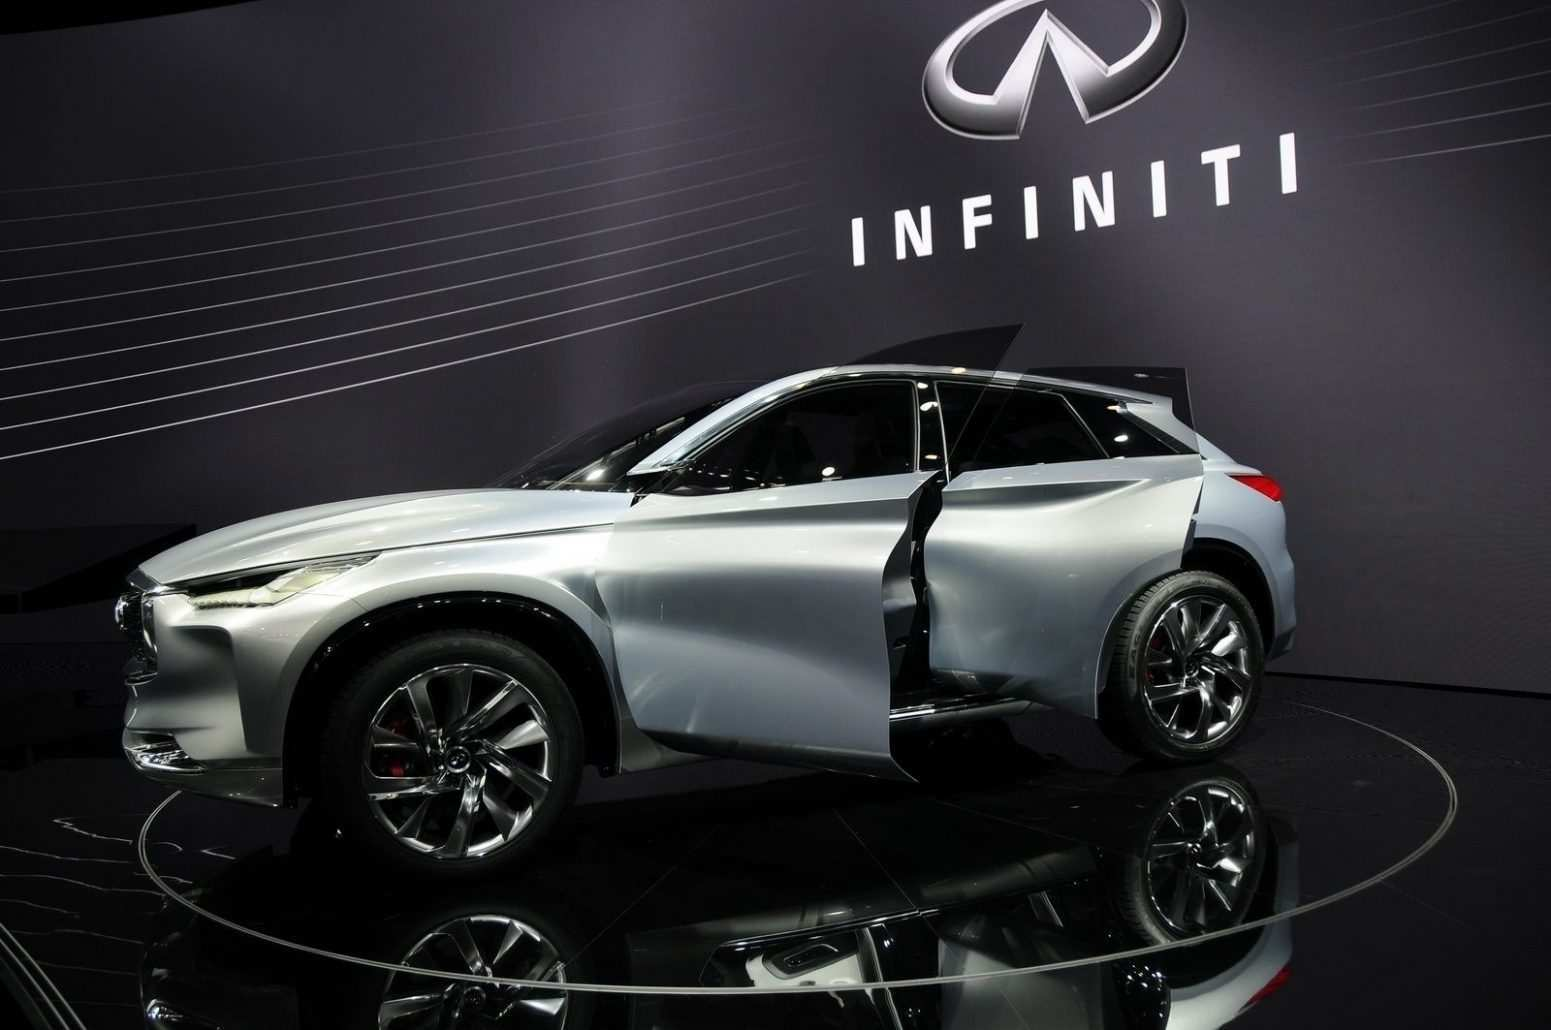 64 Concept of Infiniti Qx70 Concept Specs and Review with Infiniti Qx70 Concept